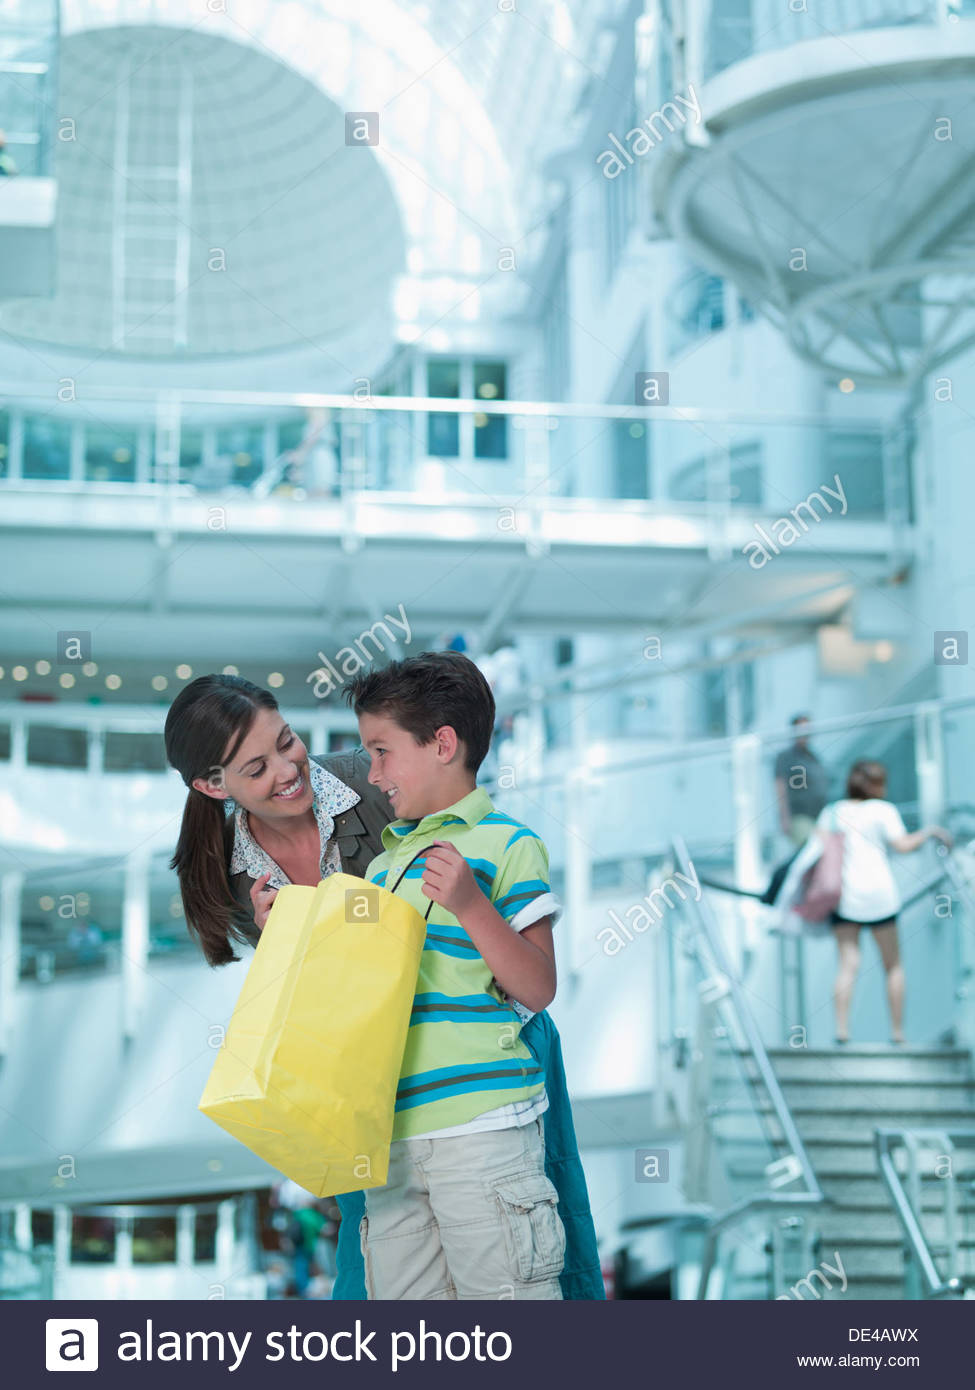 Mother and son looking in shopping bags in mall - Stock Image